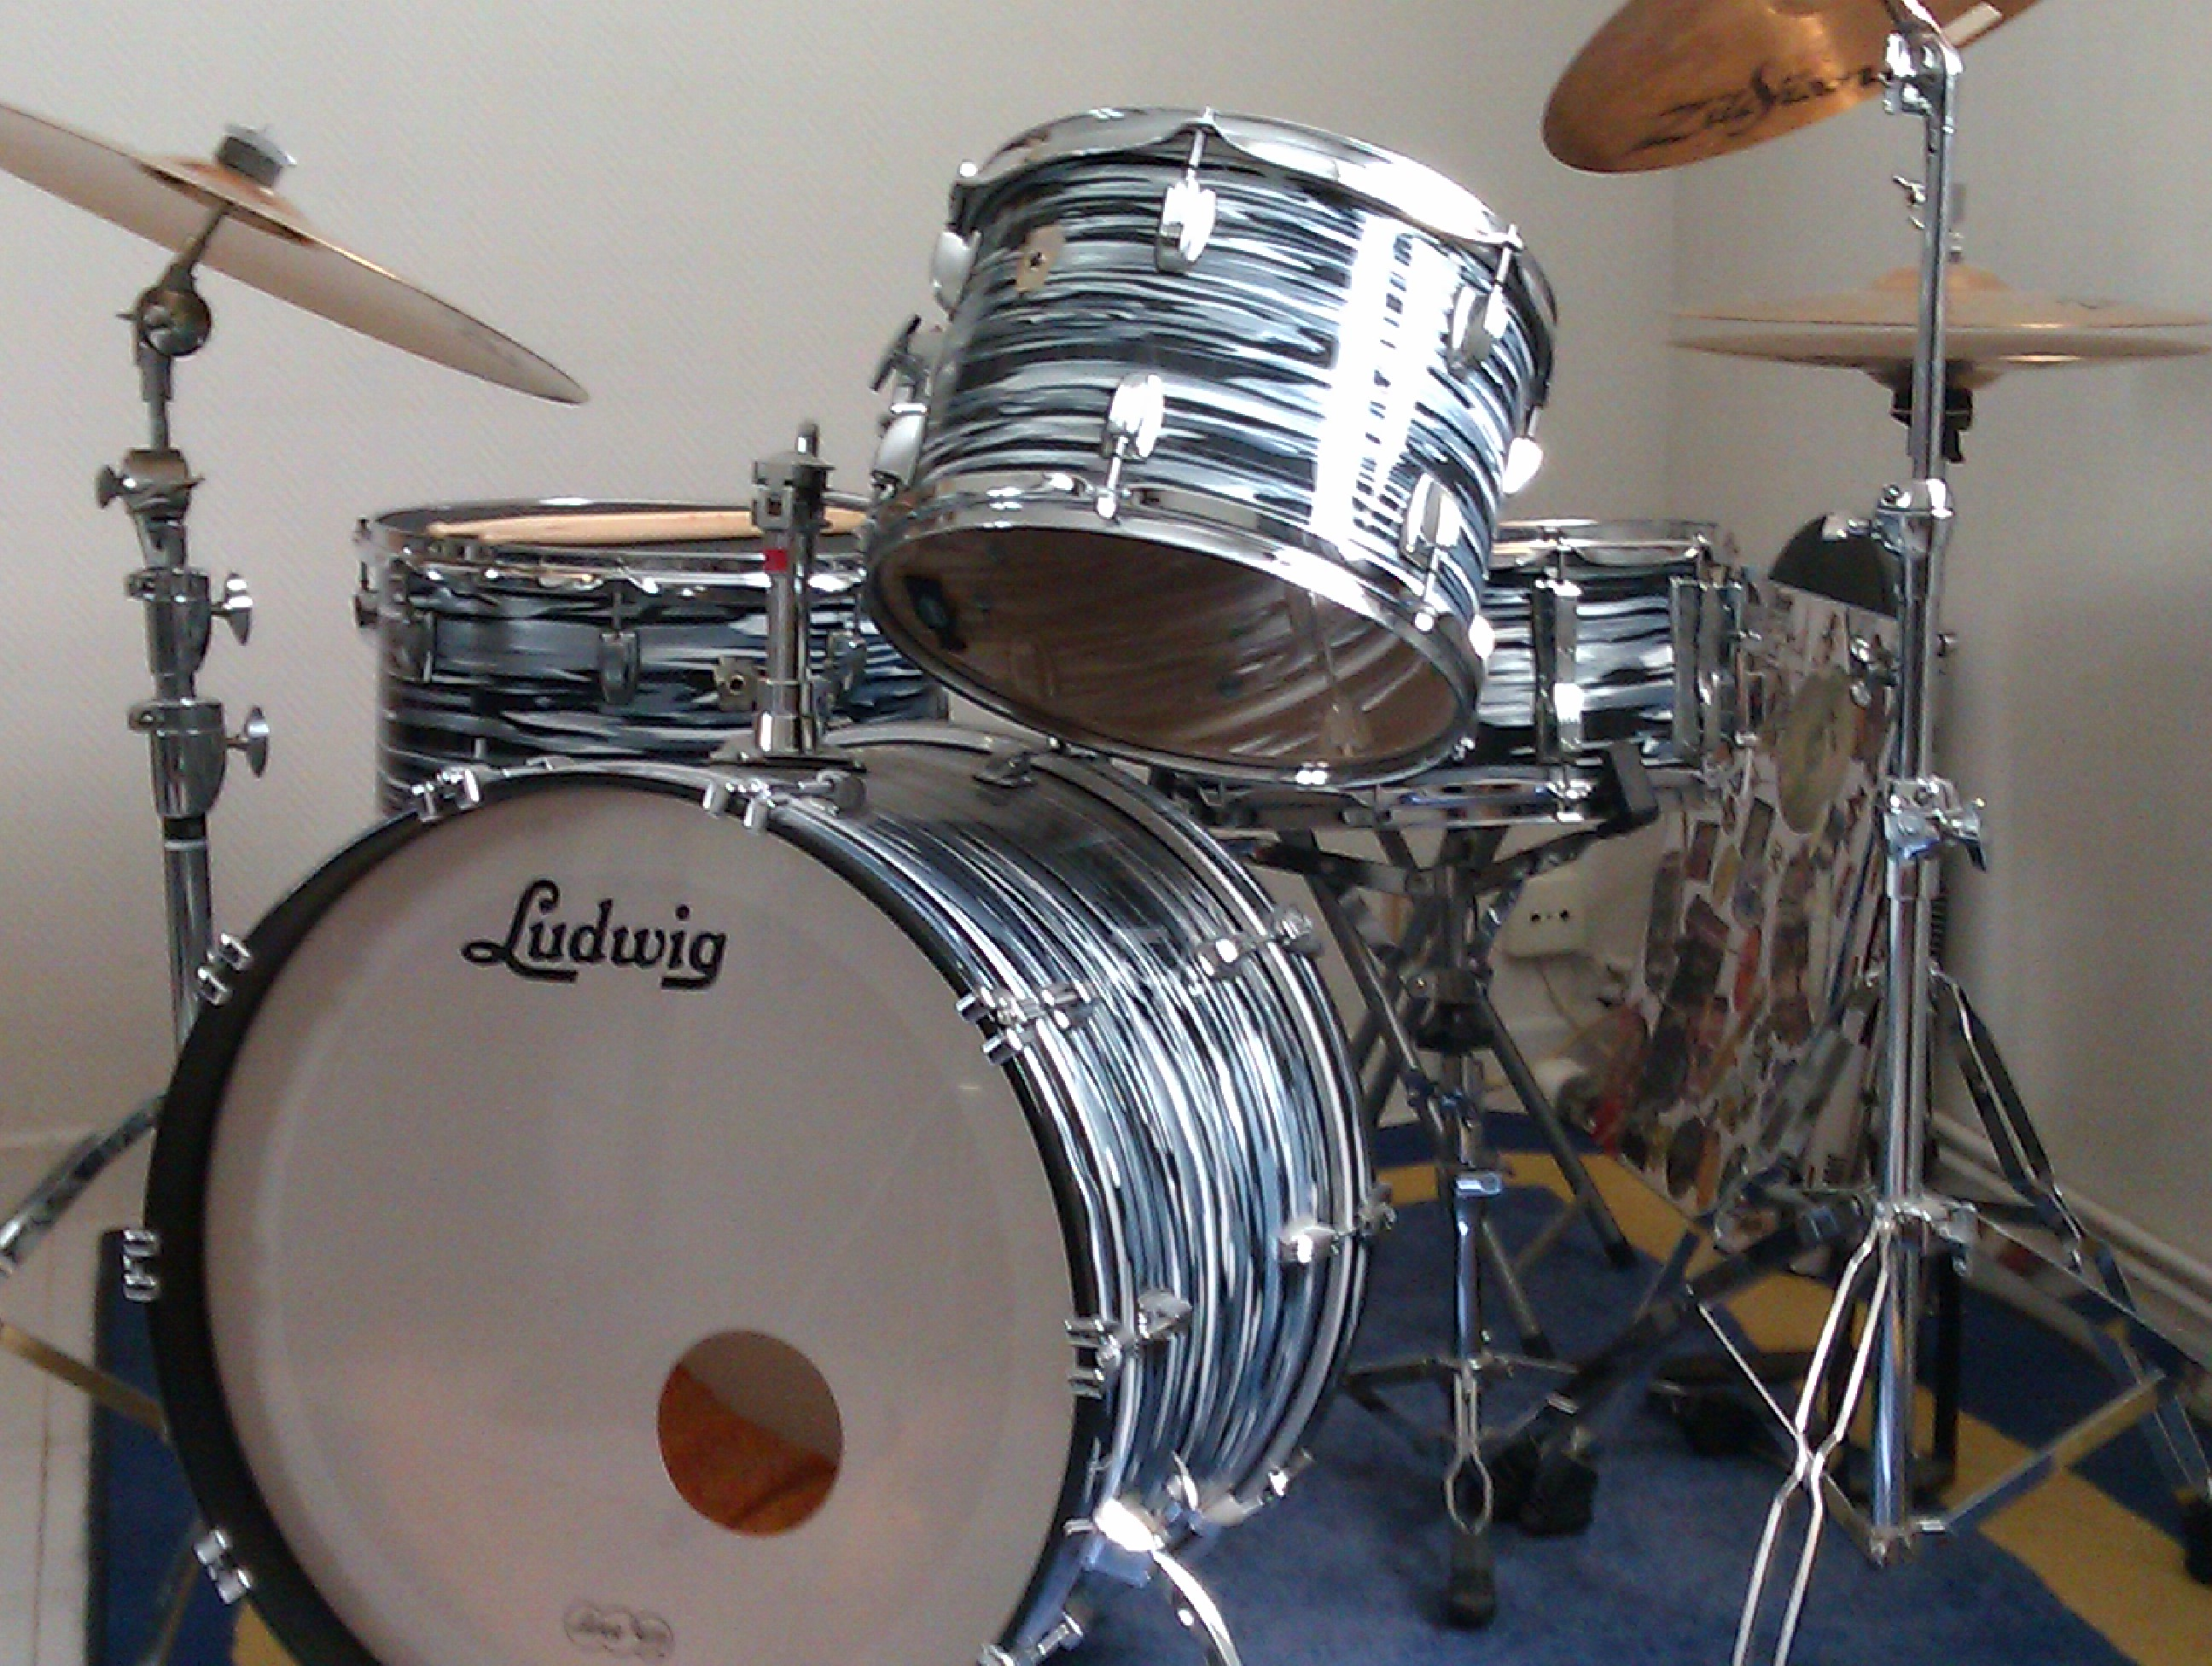 Ludwig Drums USA Classic Maple Ringo Starr Black Oyster Pearl 22